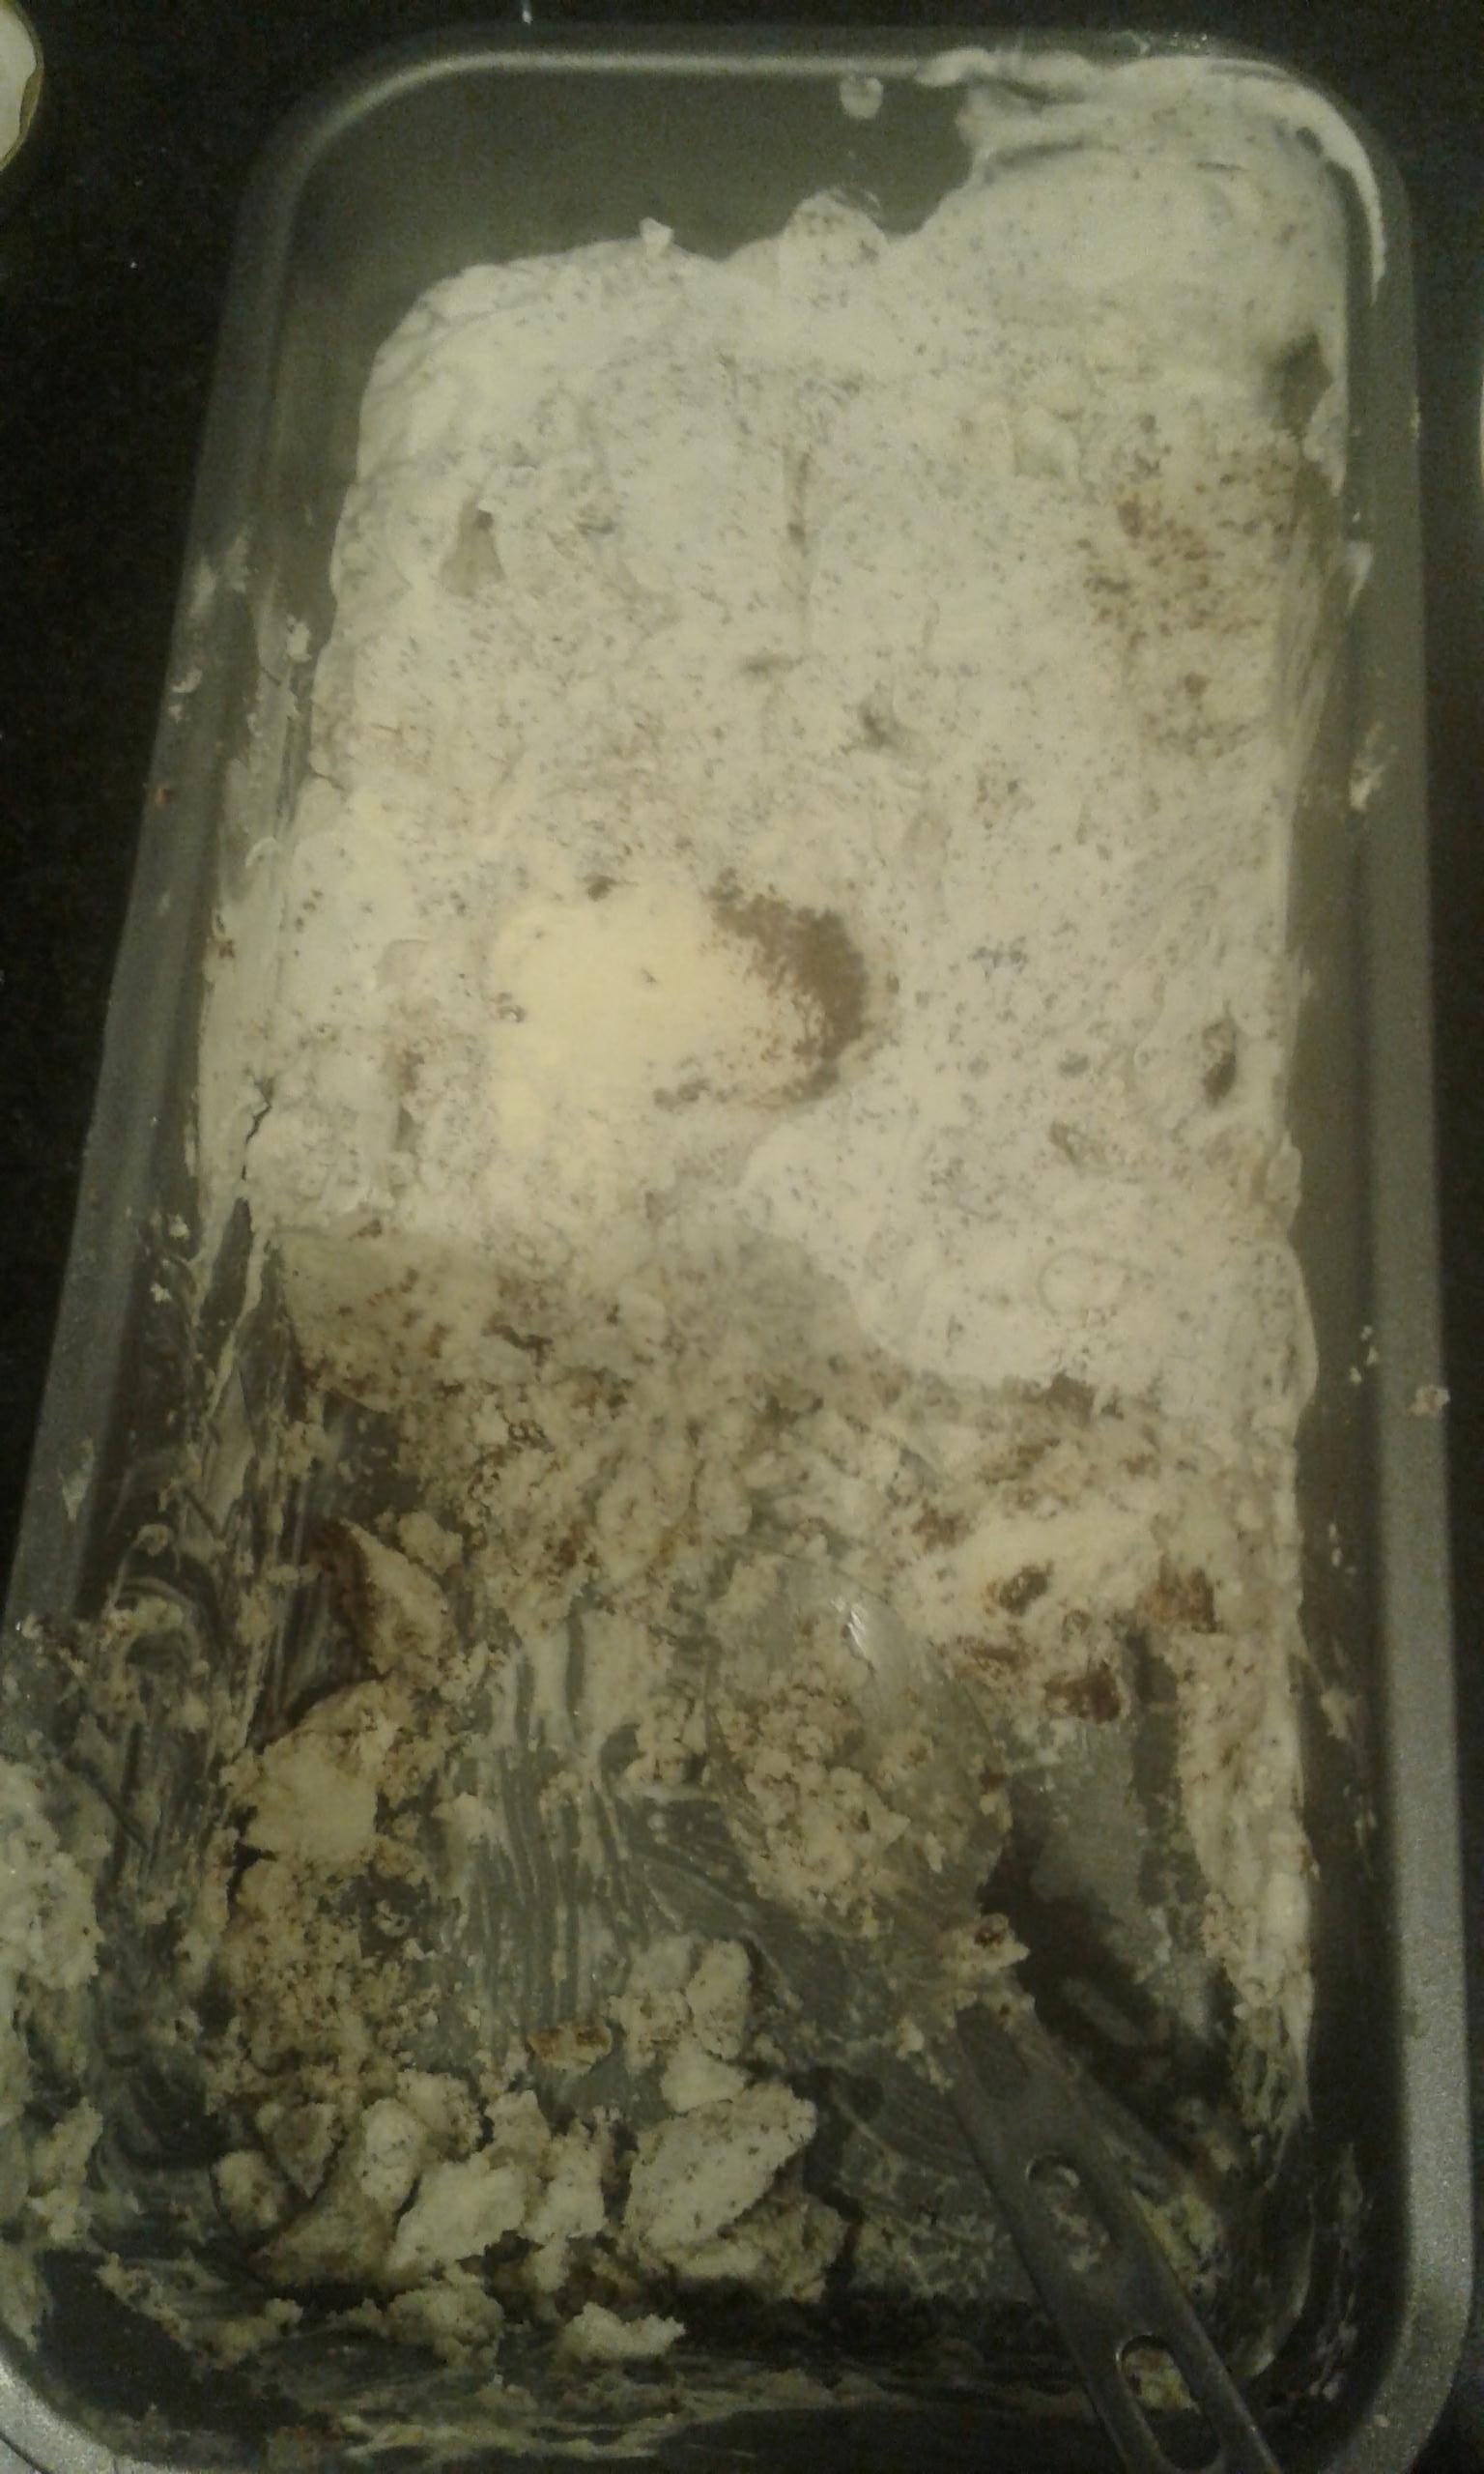 Finished keto cookies and cream ice cream